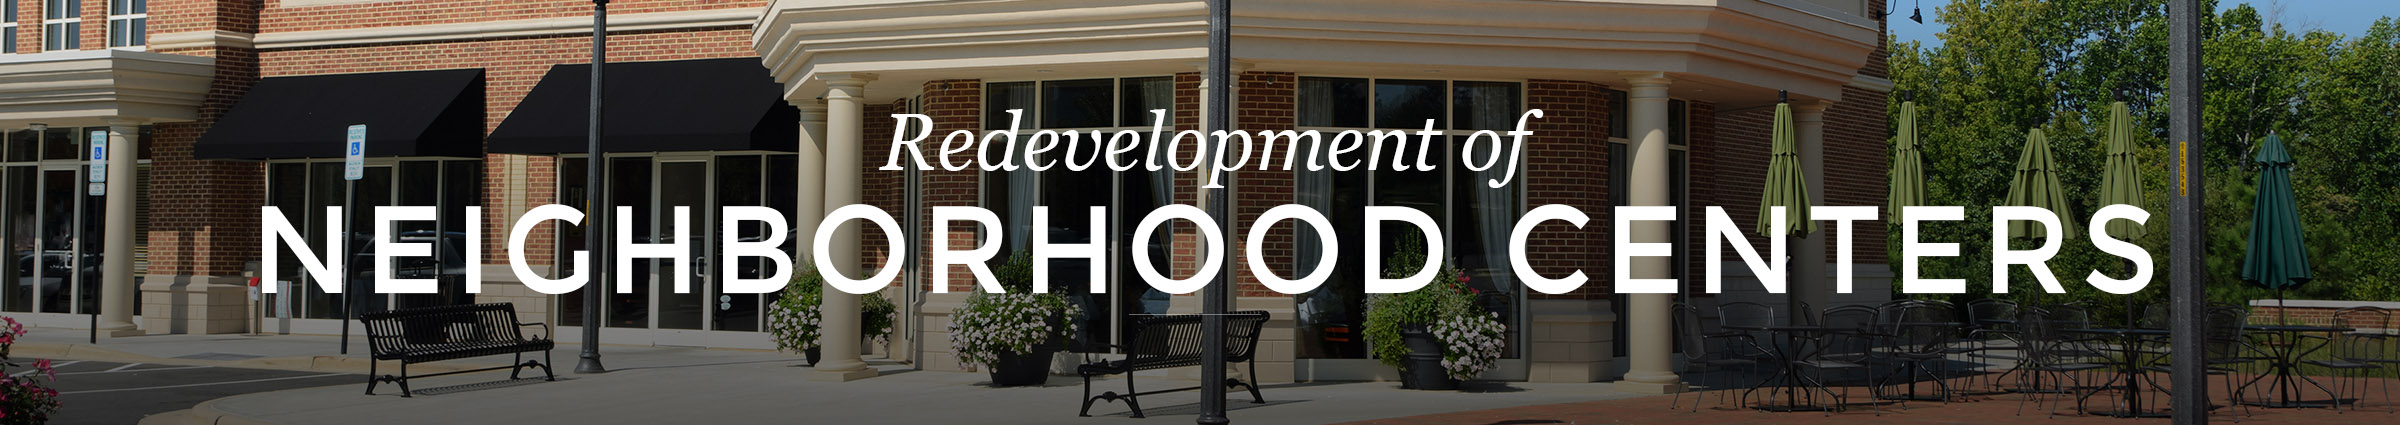 Redevelopment of Neighborhood Centers